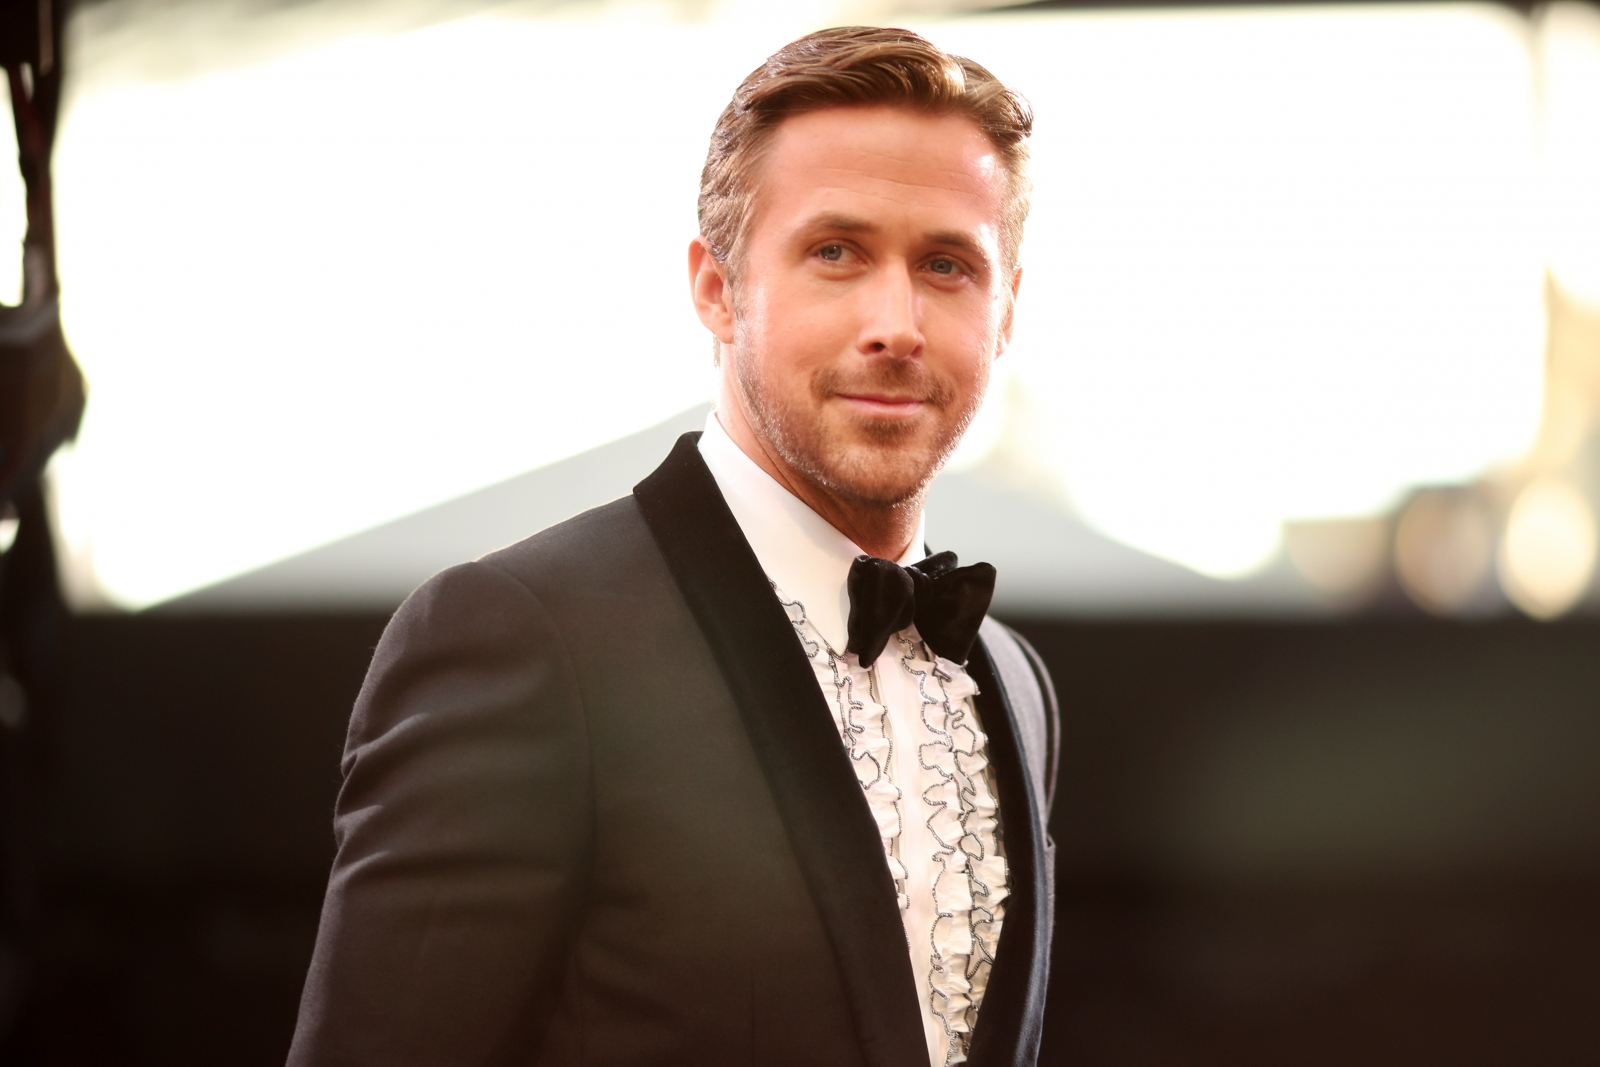 Oscars 2017: Where is Eva Mendes? Ryan Gosling arrives at big event alone yet again